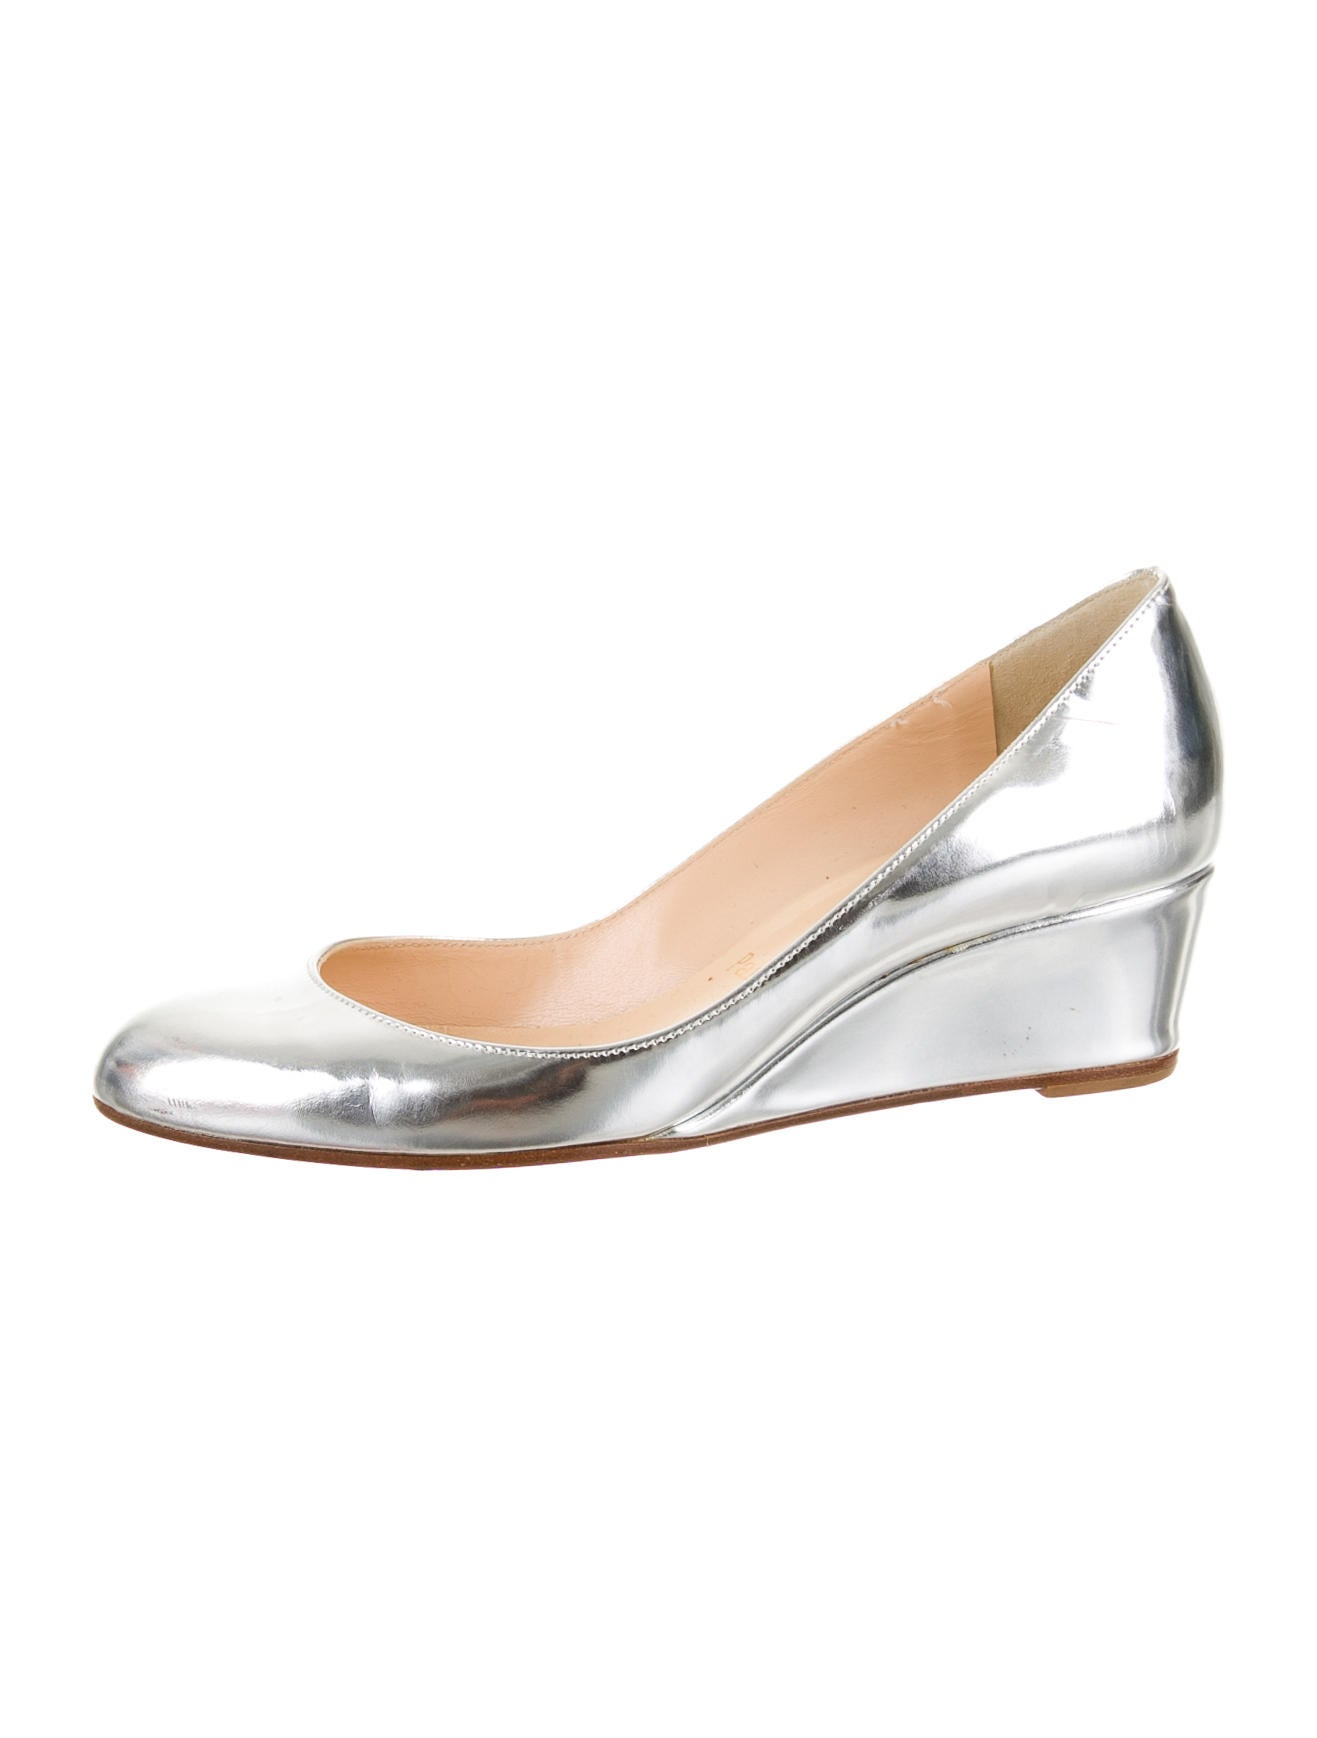 louboutin shoe price - christian louboutin round-toe wedges Metallic leather | The Little ...